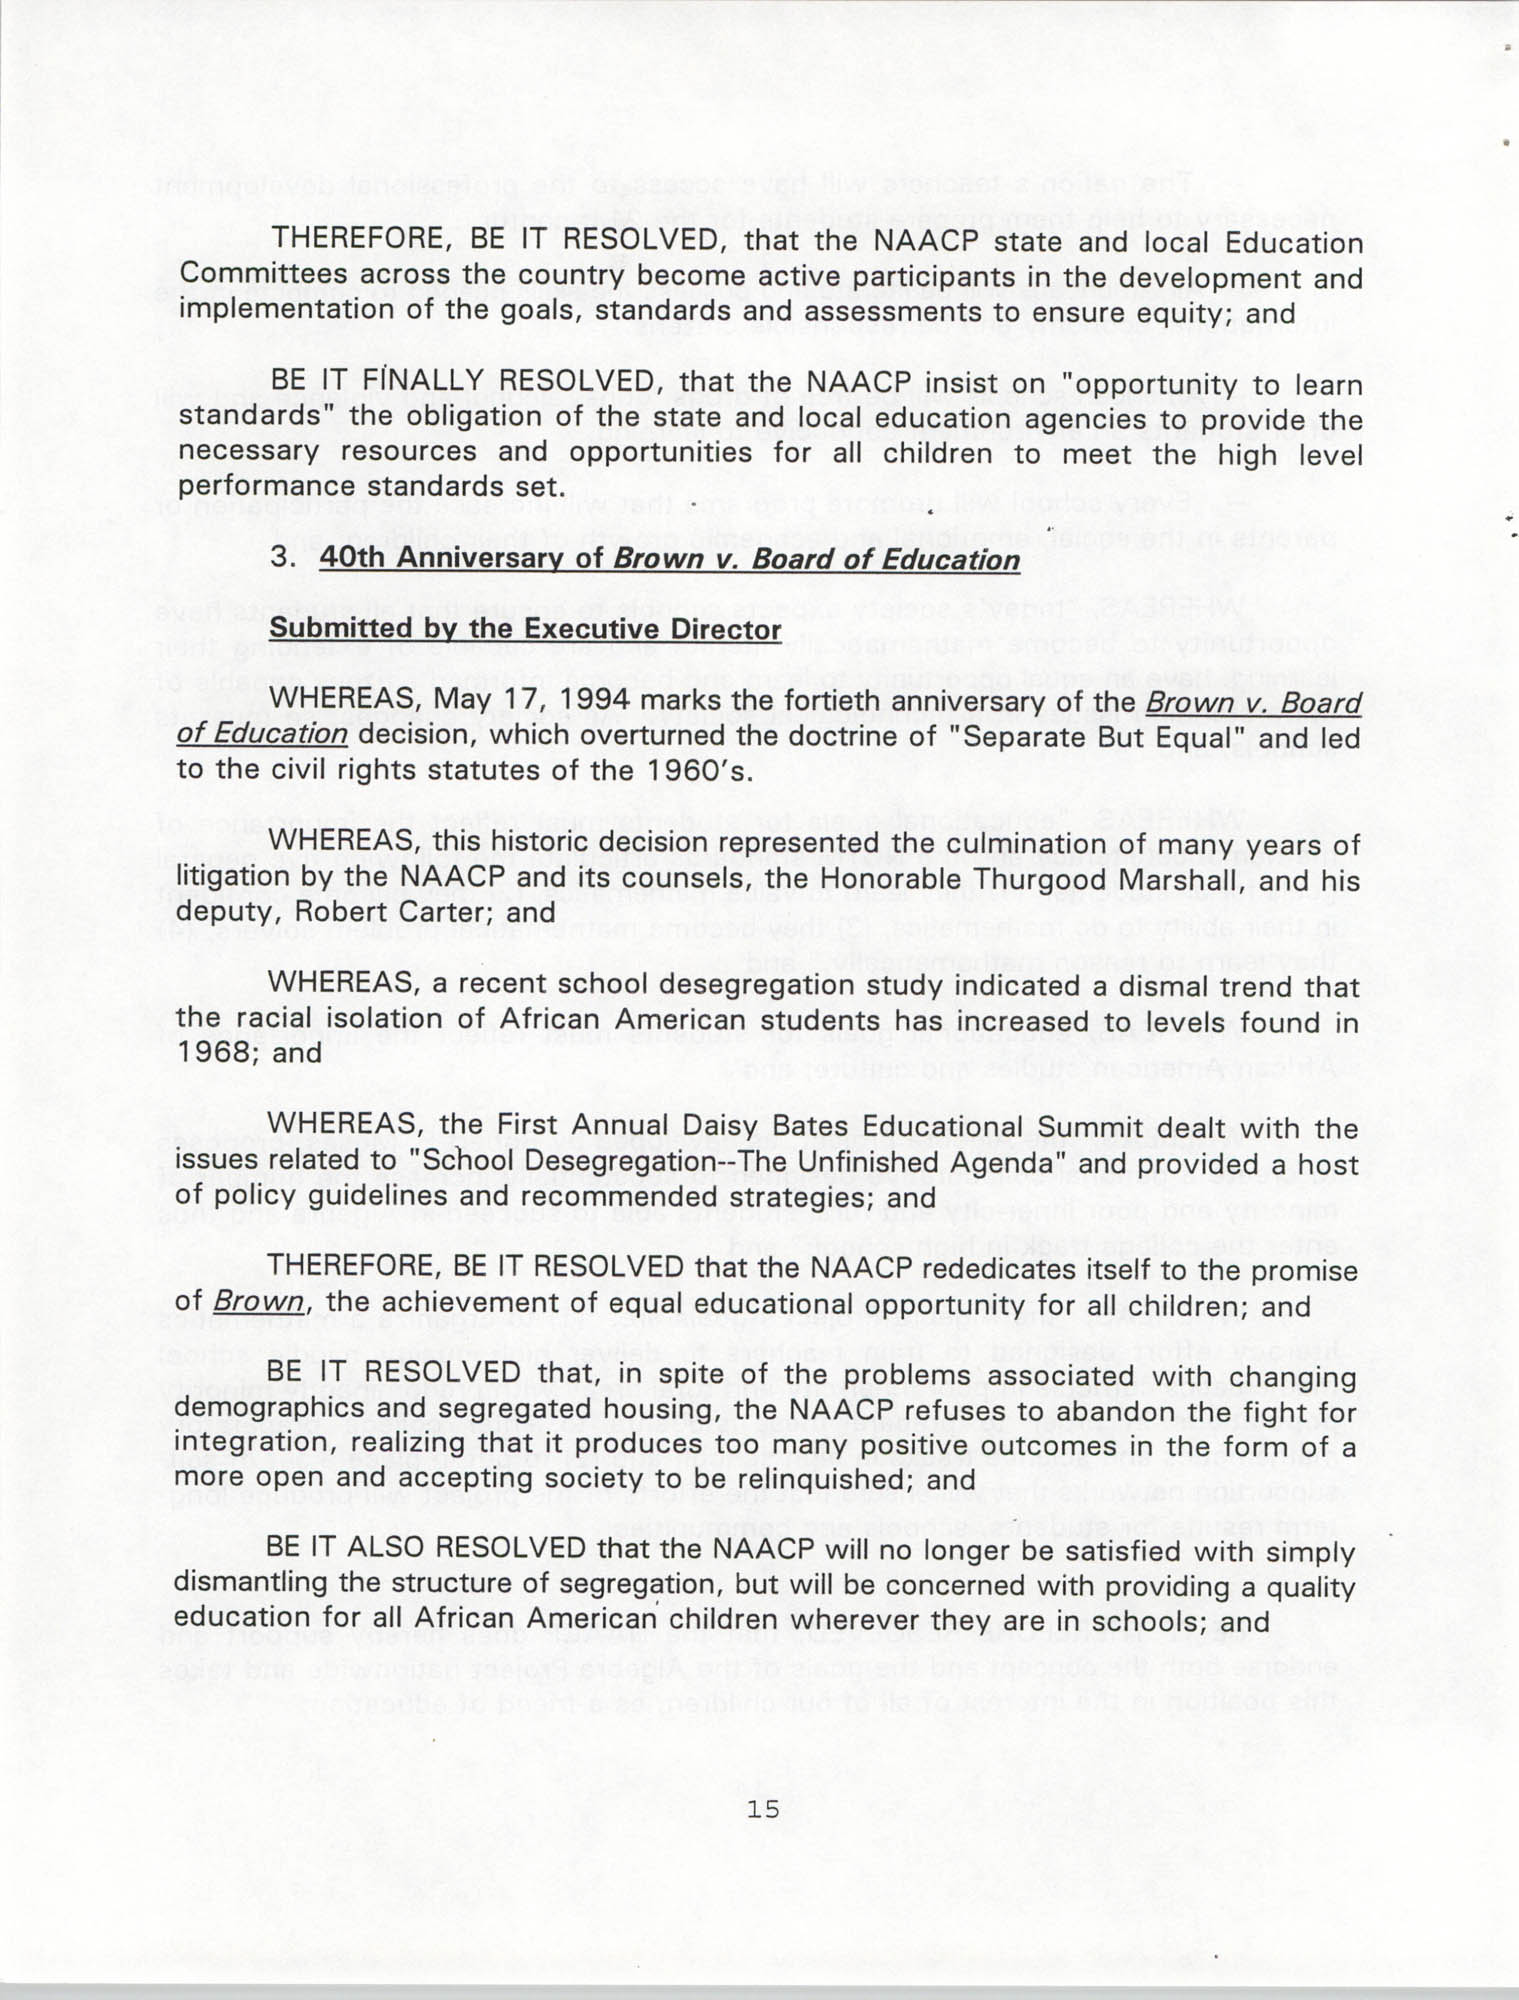 Resolutions Submitted Under Article X, Section 2 of the Constitution of the NAACP, 1994, Page 15